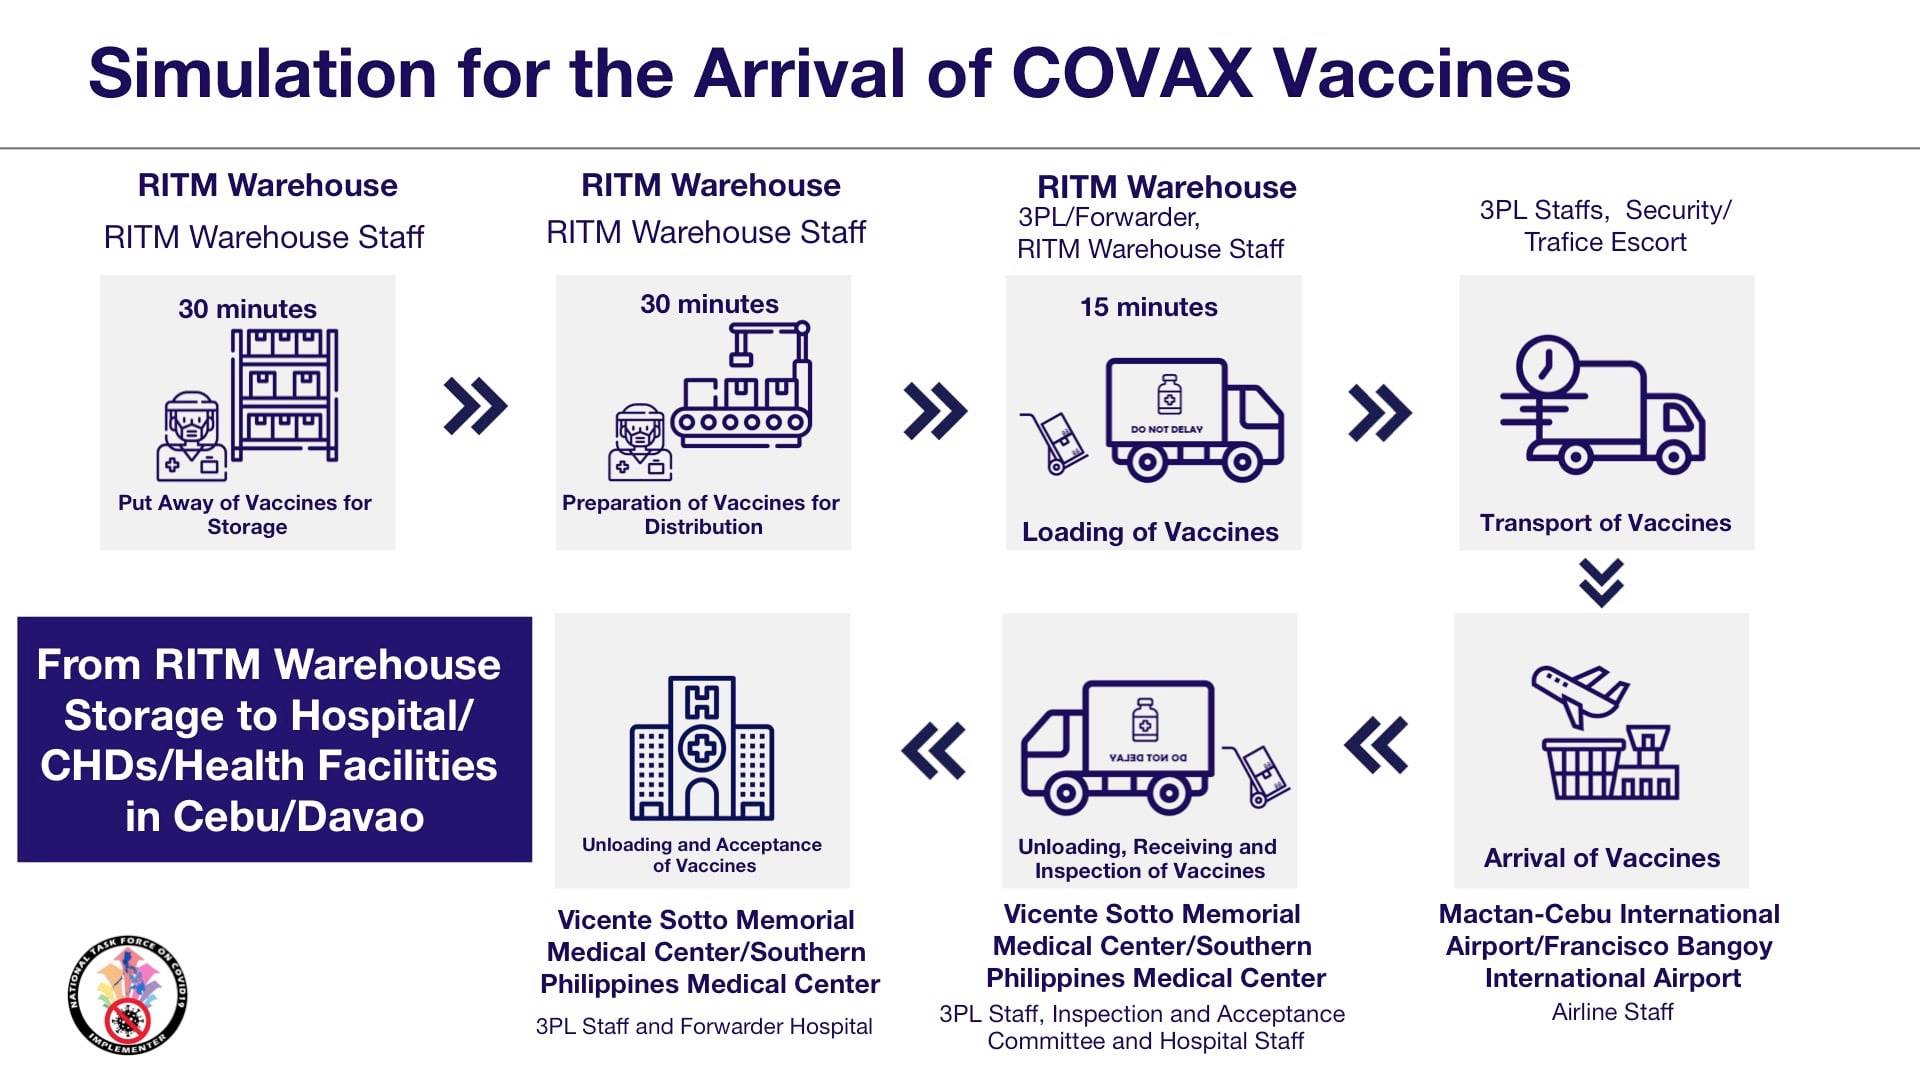 Simulation of the arrival of COVAX Vaccines